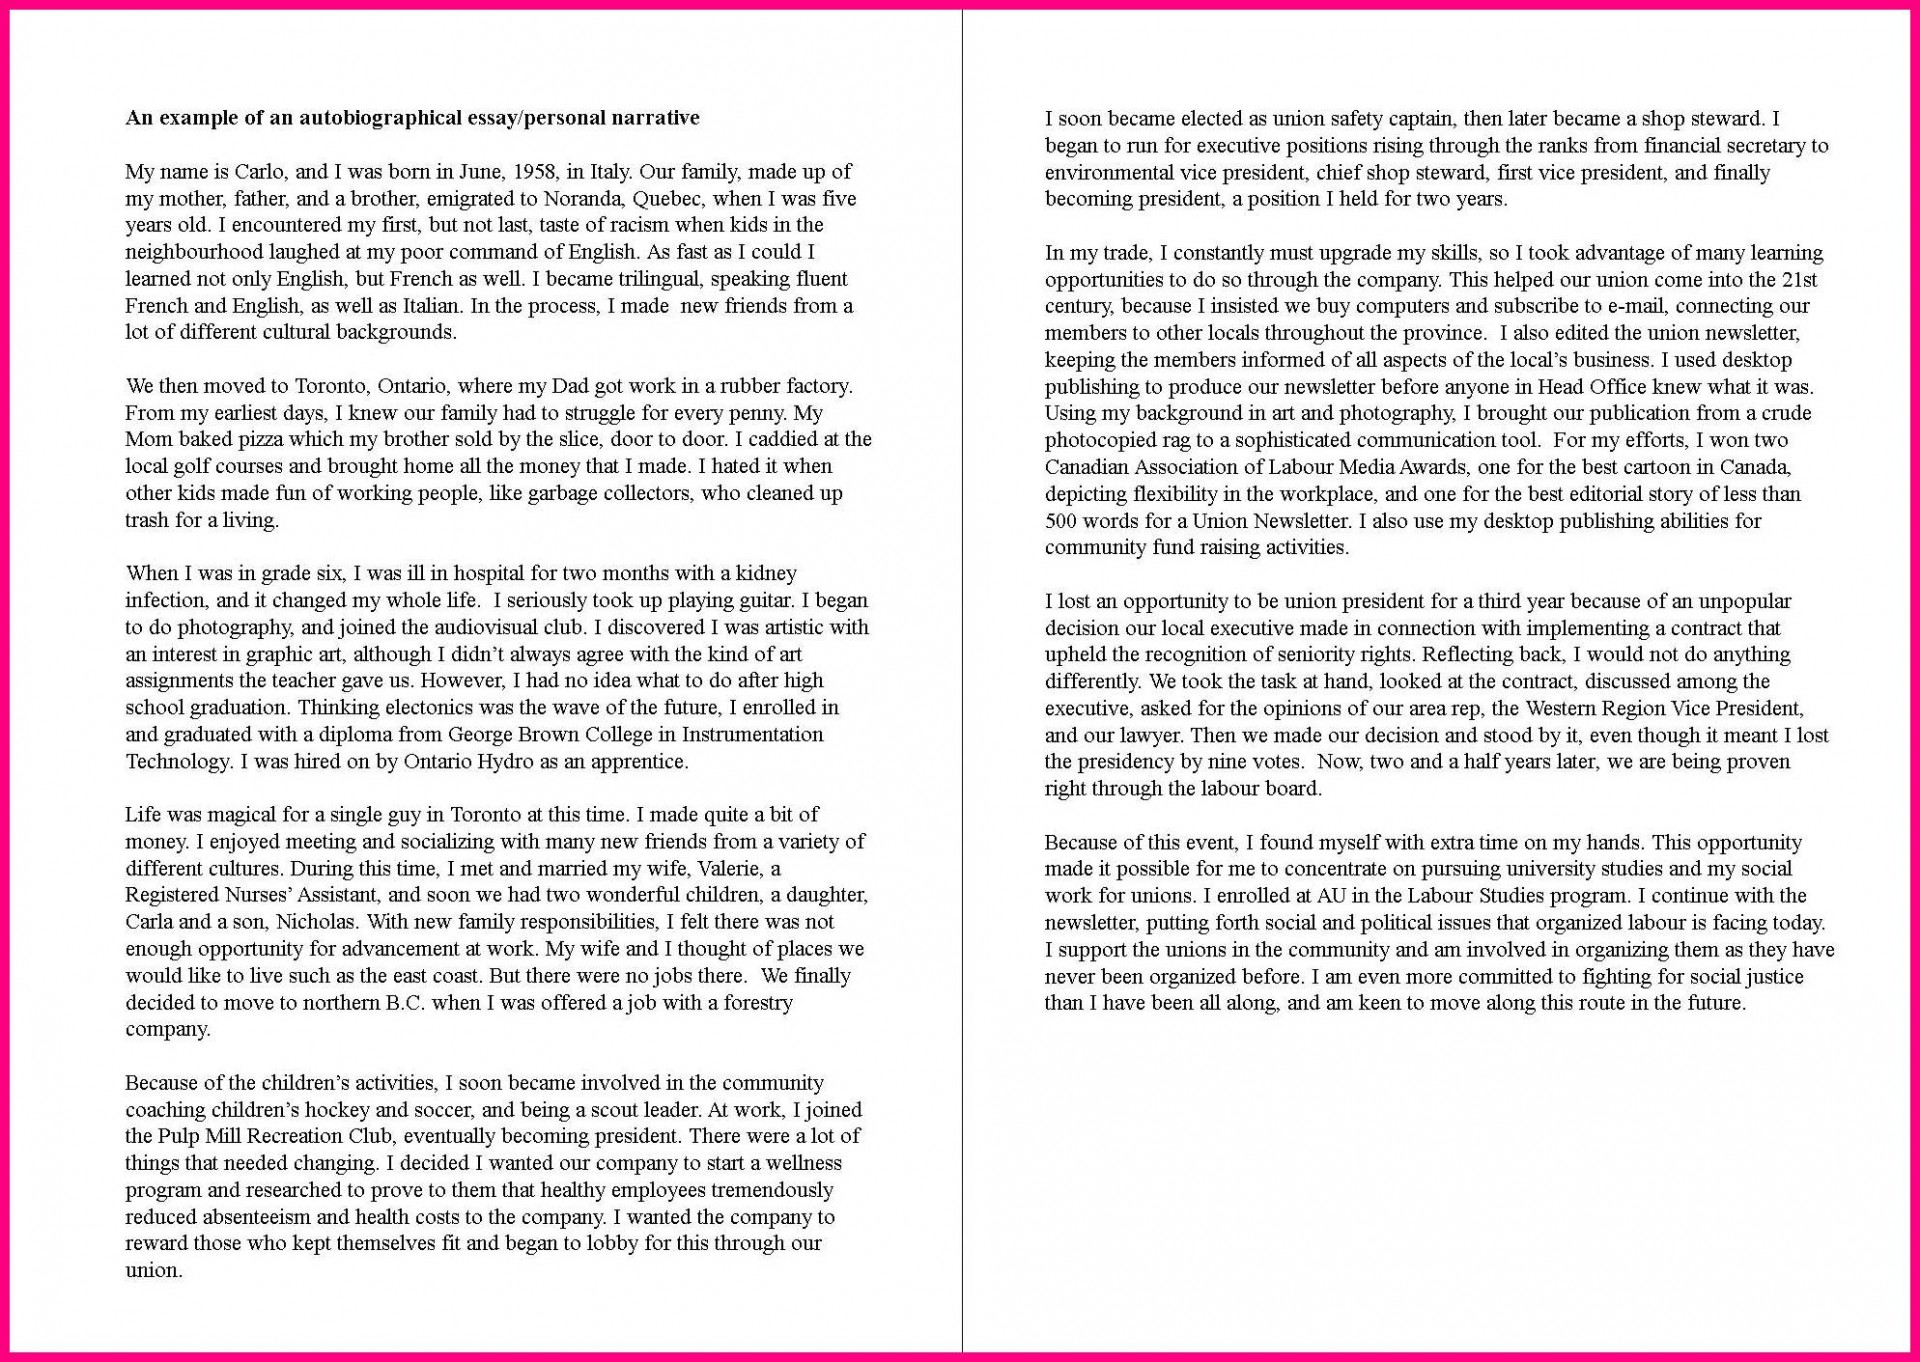 005 Autobiography Essay Example Family Background Sample Autobiographical Unique Of About Yourself Tagalog Bio For Students 1920